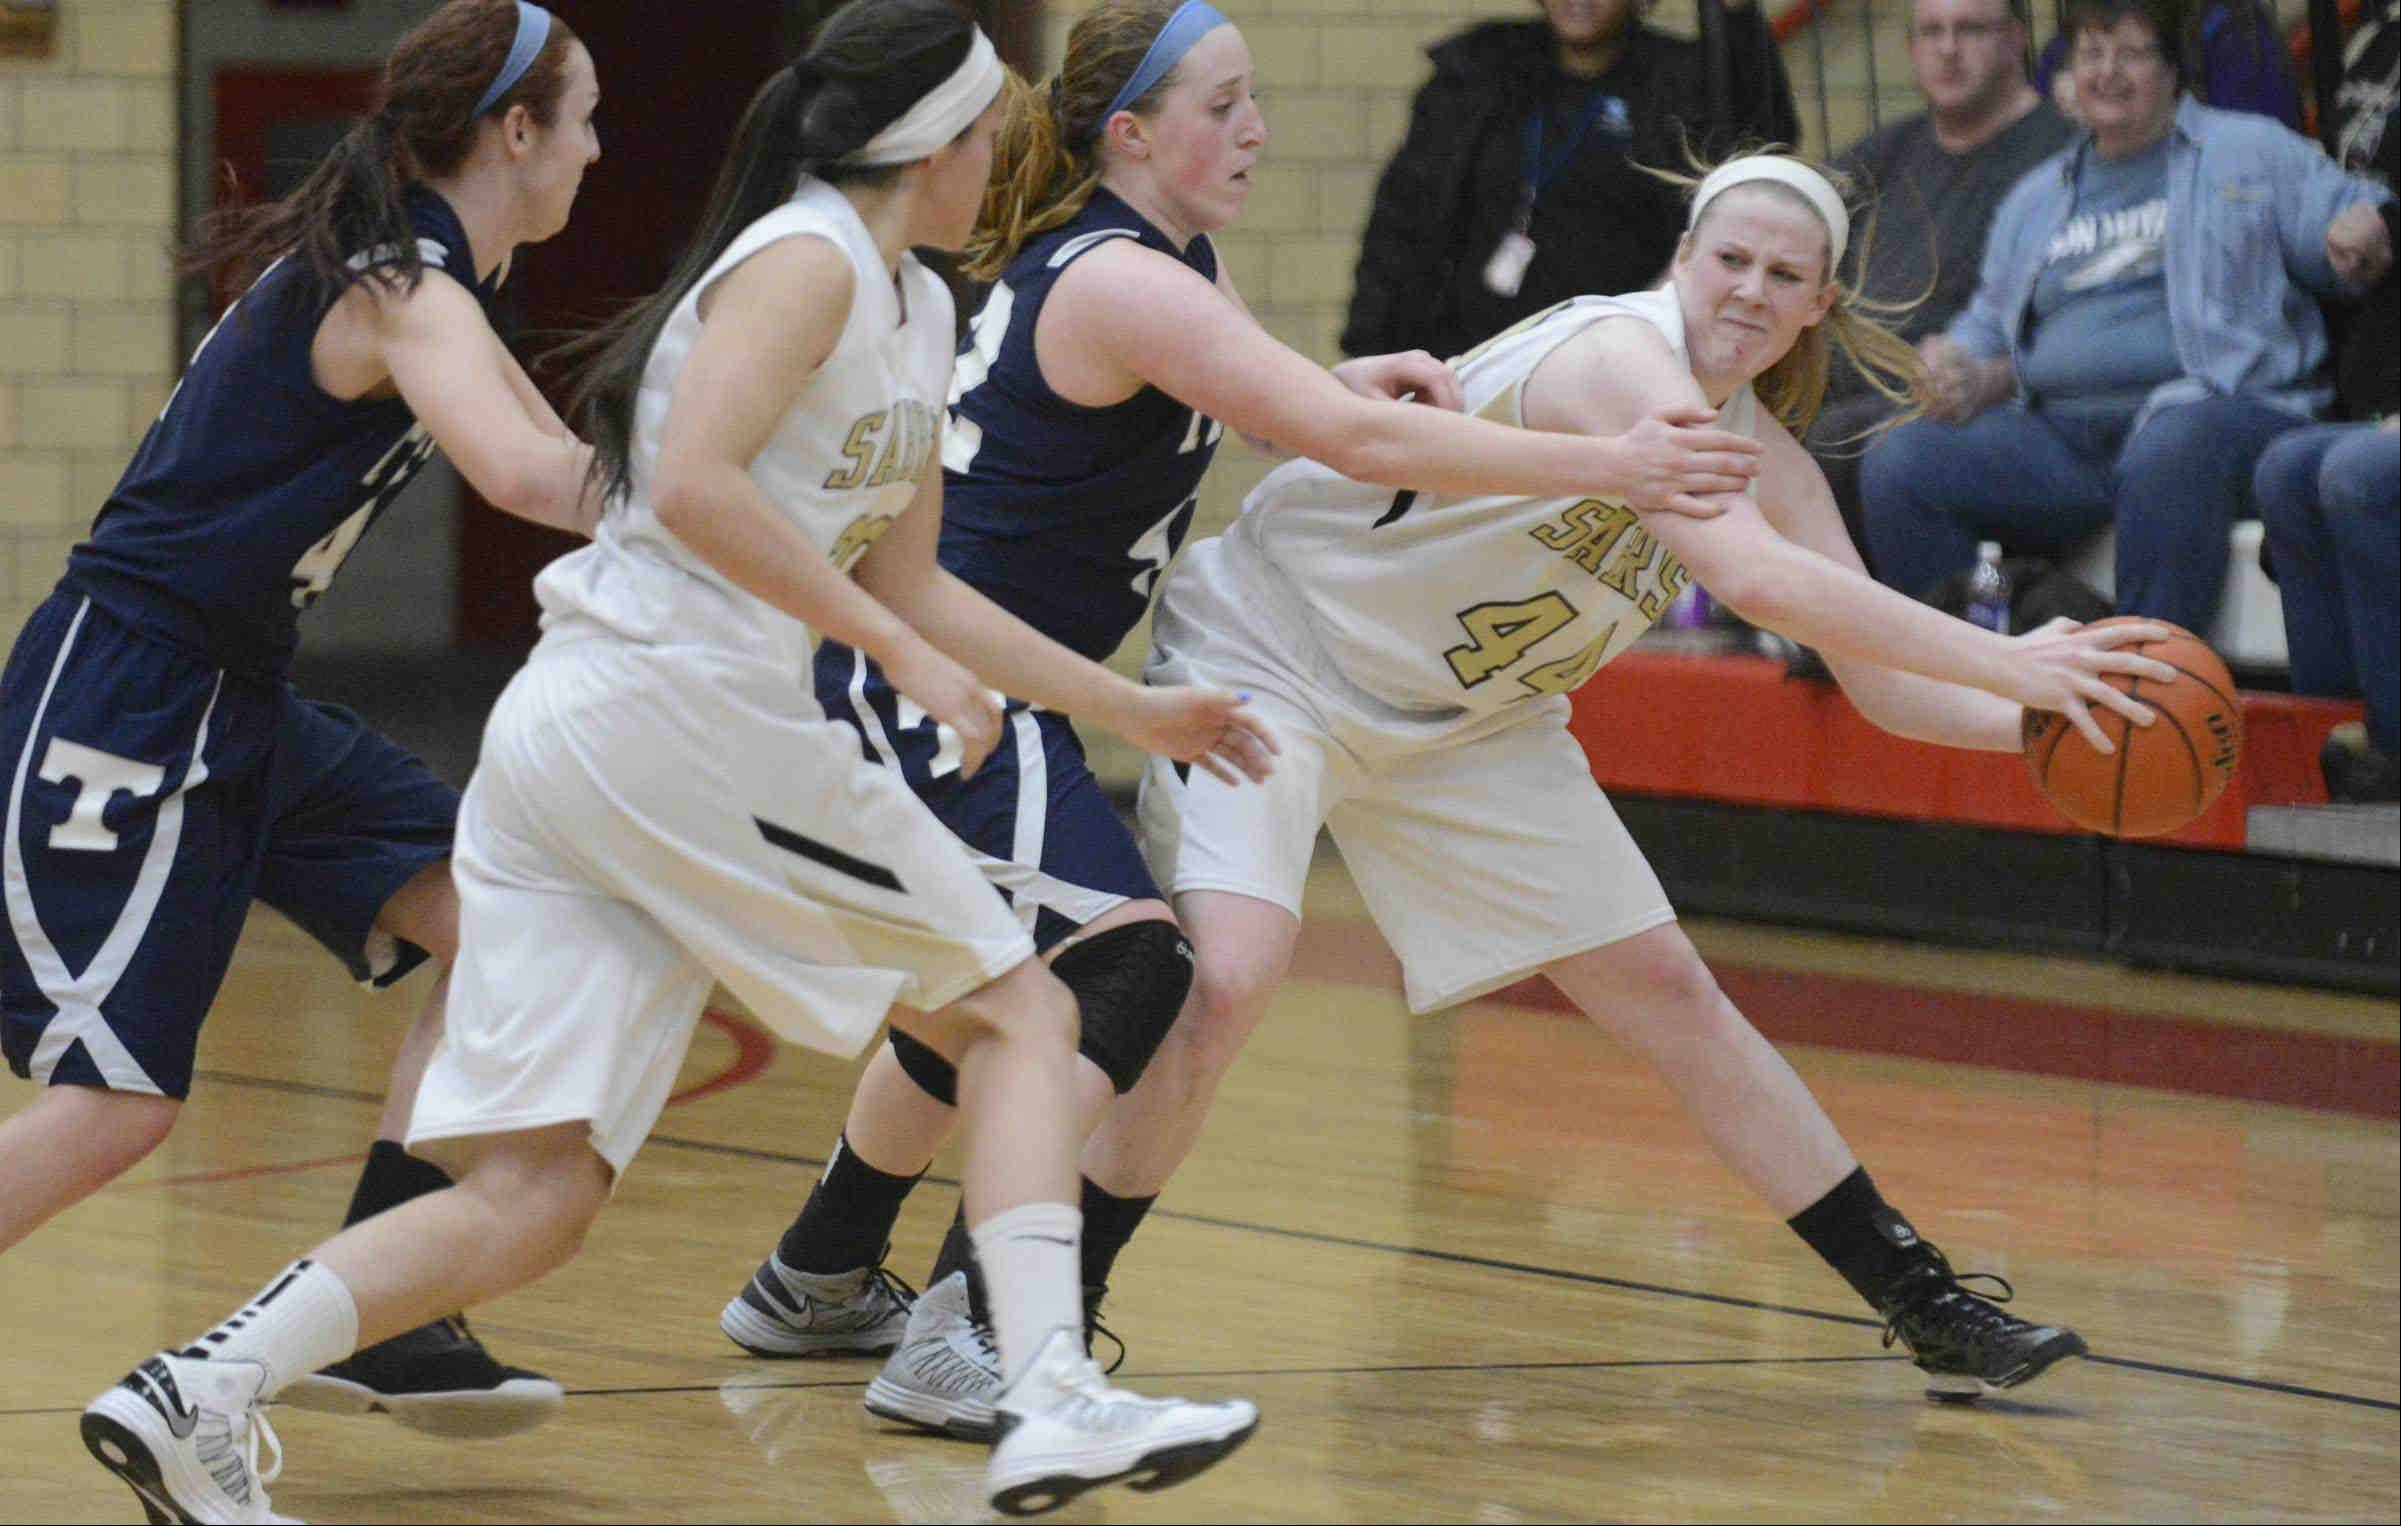 Streamwood�s Hannah McGlone keeps the ball away from Cary-Grove�s Olivia Jakubicek with seconds to play Monday in the Class 4A sectional game in Rockford.